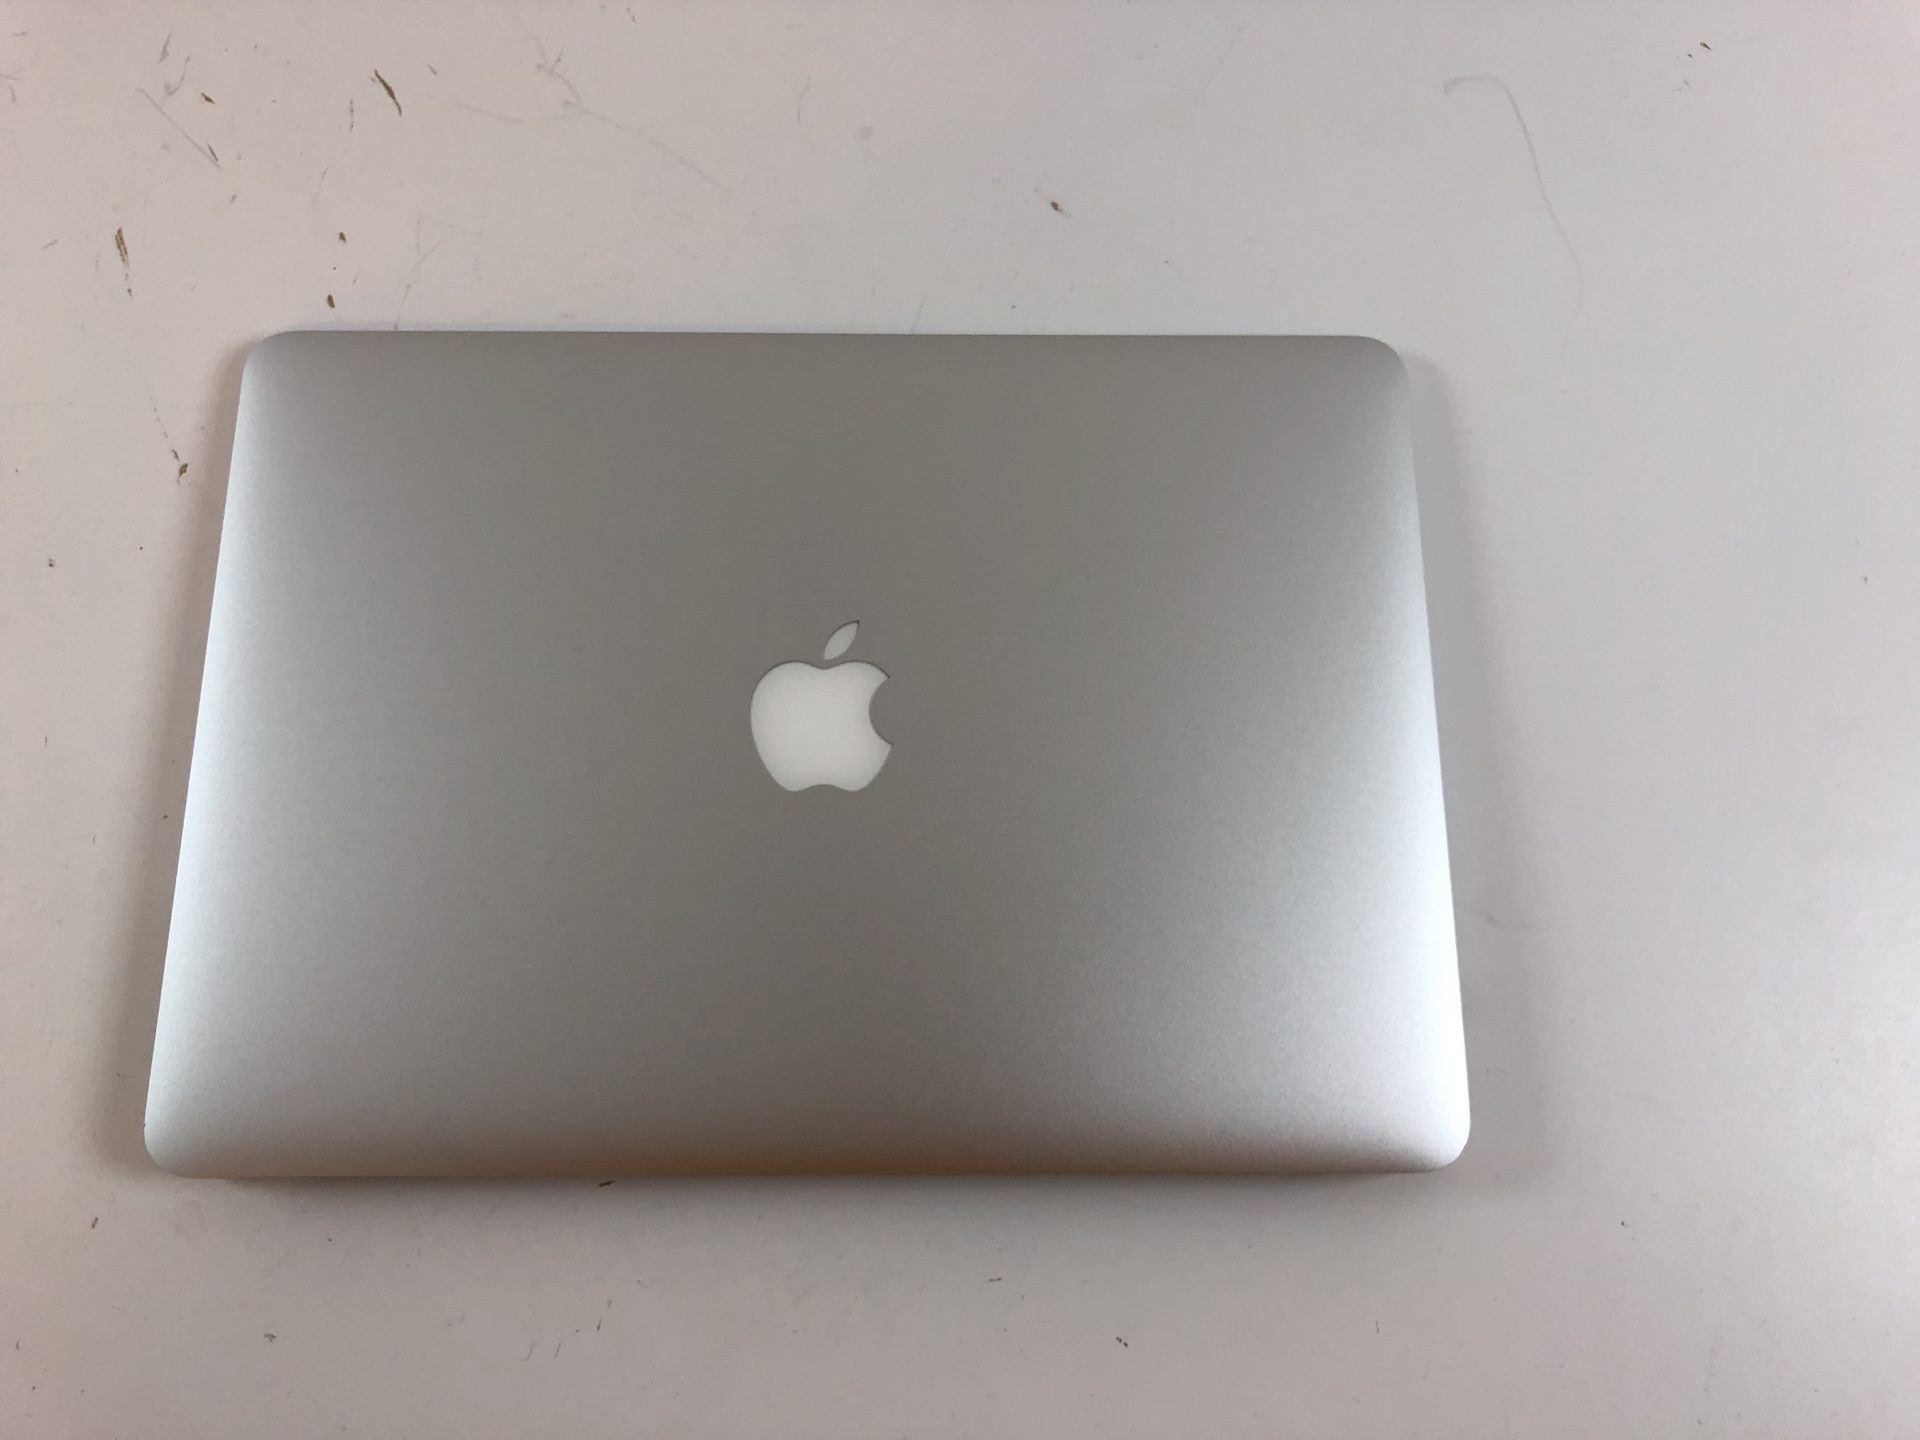 "MacBook Air 13"" Mid 2013 (Intel Core i5 1.3 GHz 4 GB RAM 128 GB SSD), Intel Core i5 1.3 GHz, 4 GB RAM, 128 GB SSD, Kuva 4"